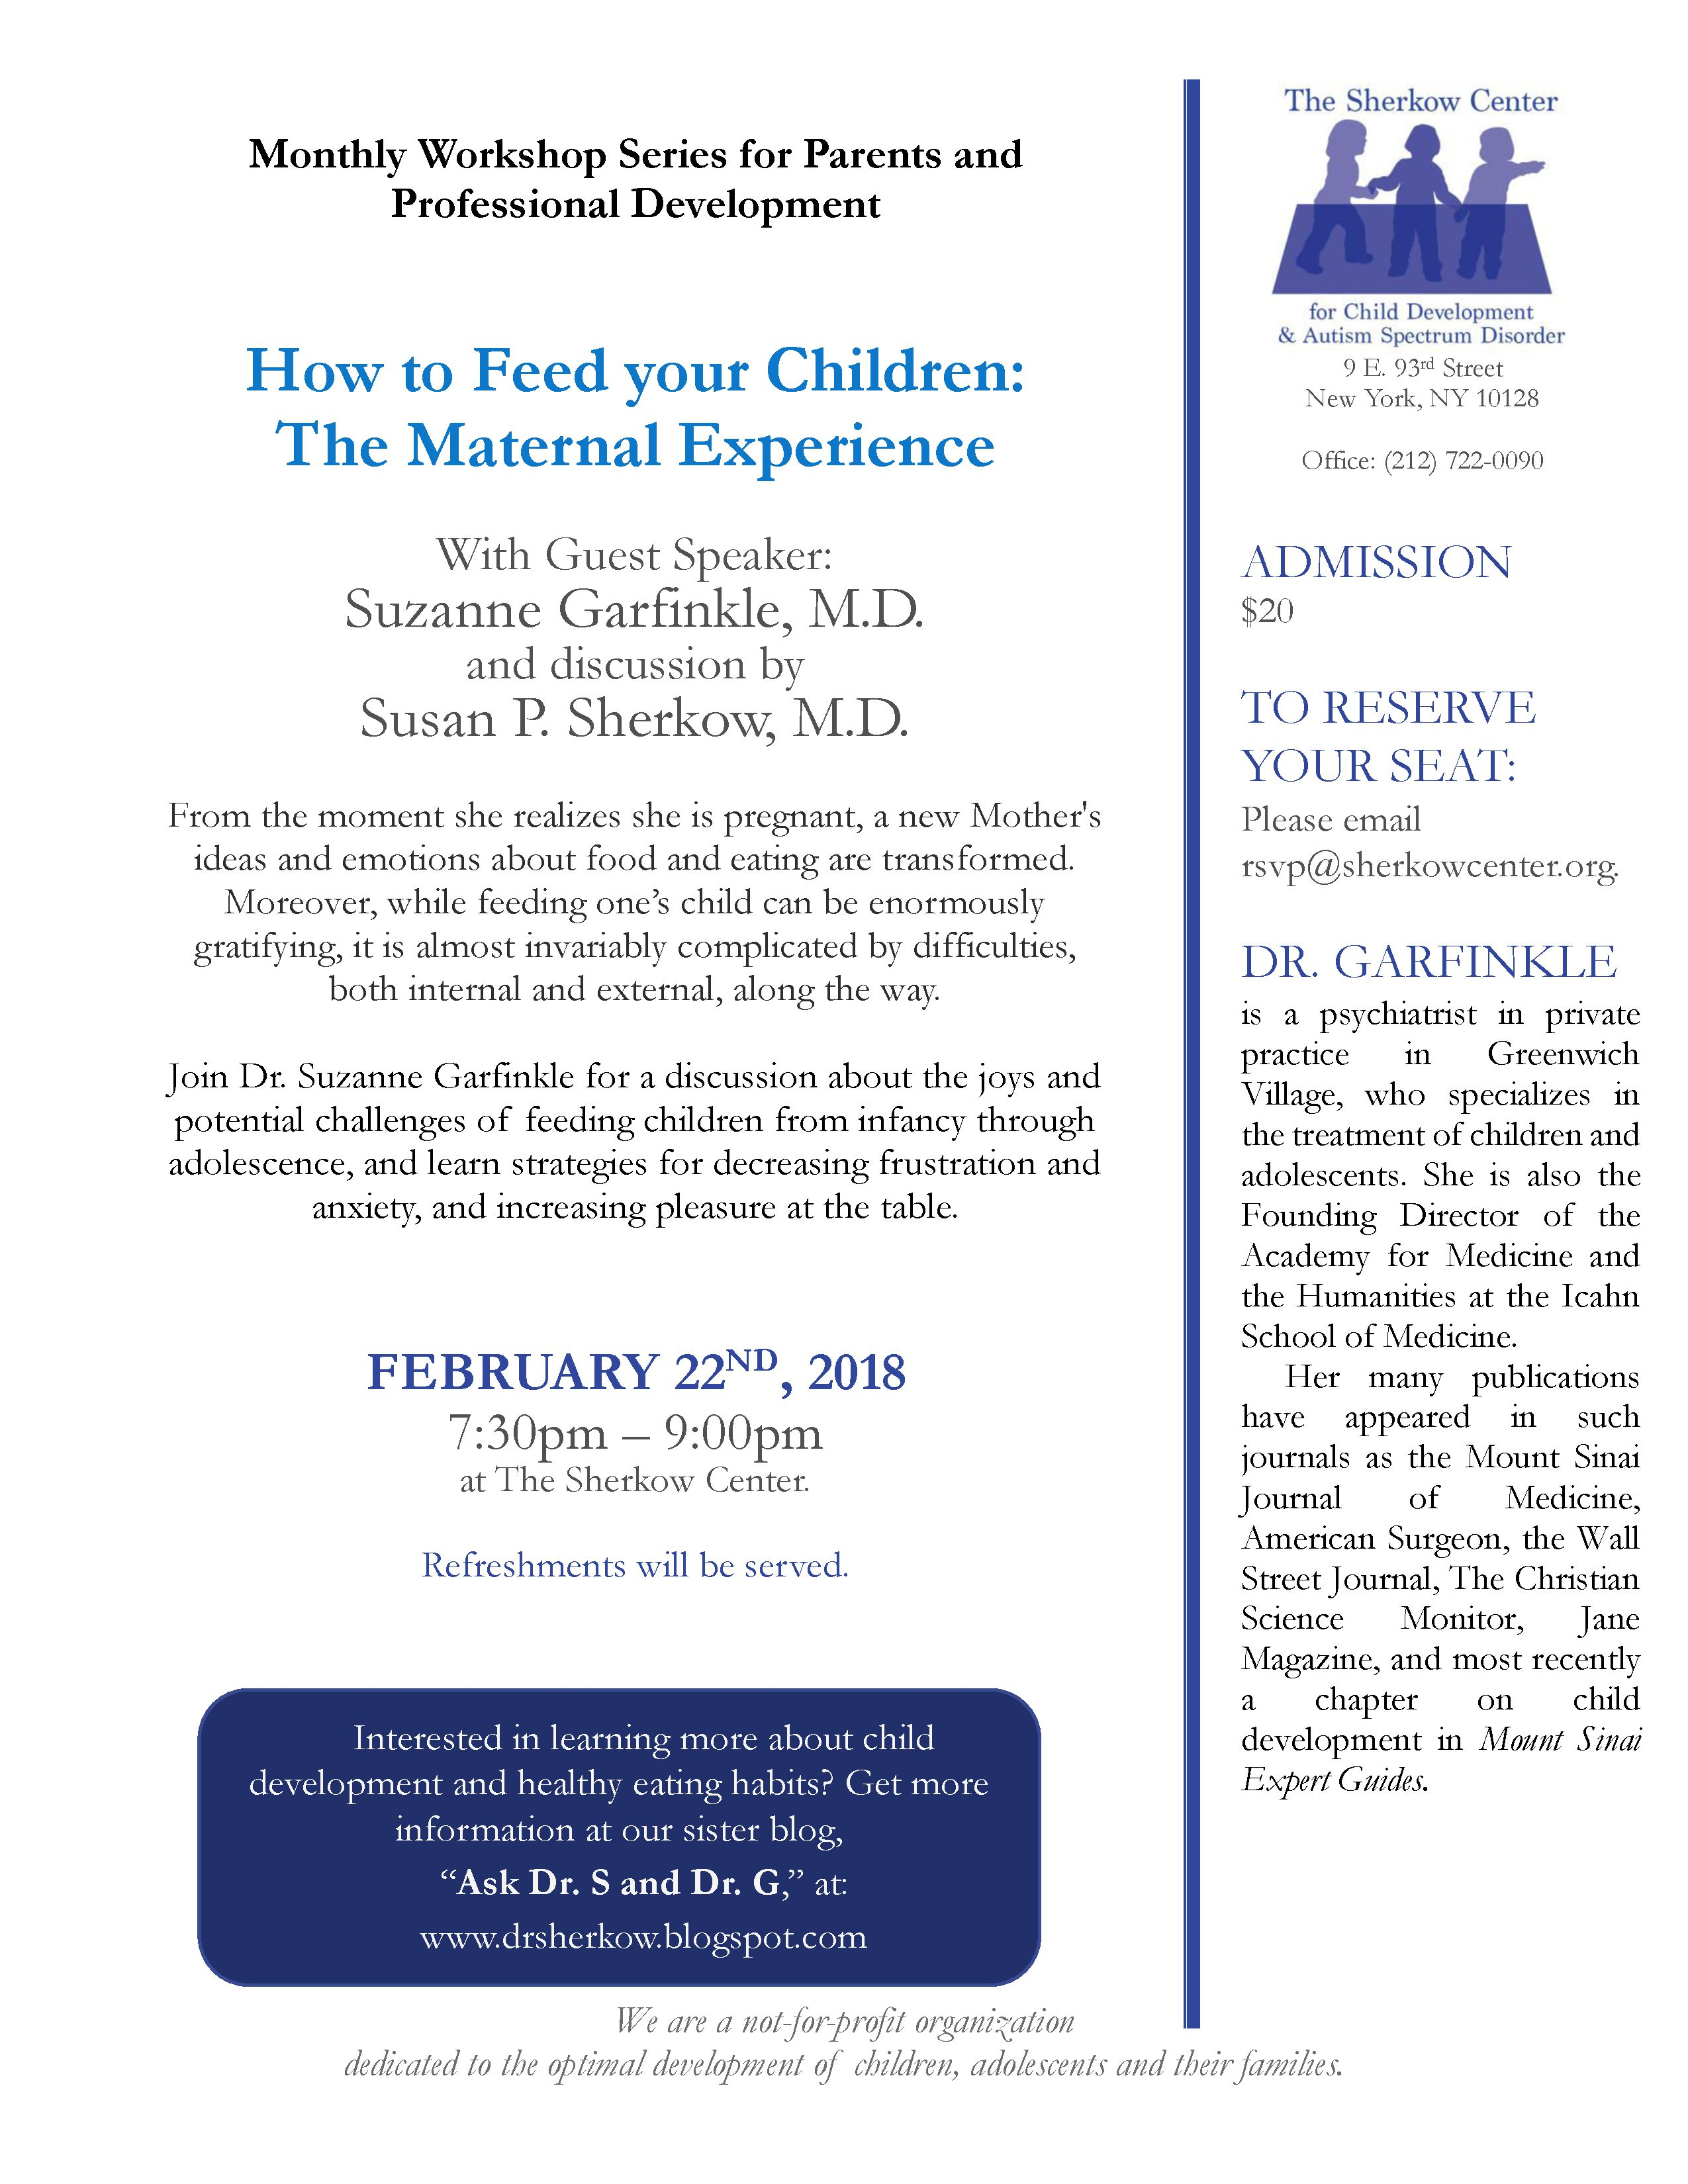 For Parents Of Autistic Kids 22nd >> 2 22 18 How To Feed Your Children The Maternal Experience With Dr